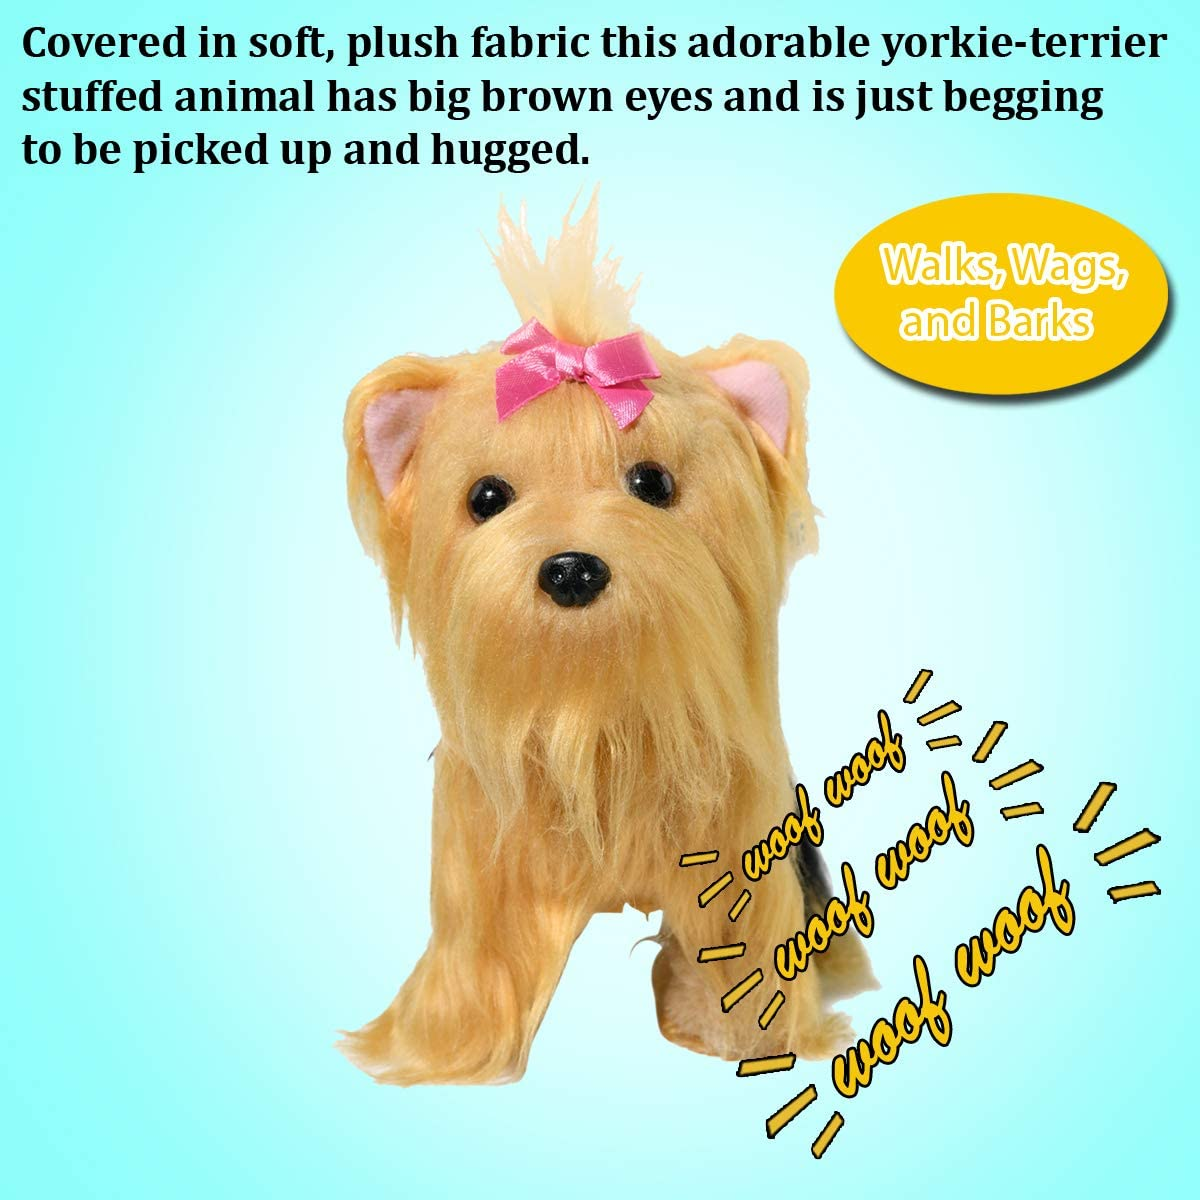 Home-X Yorkie Terrier Interactive Pets Stuffed Animals Electric Dog Toys